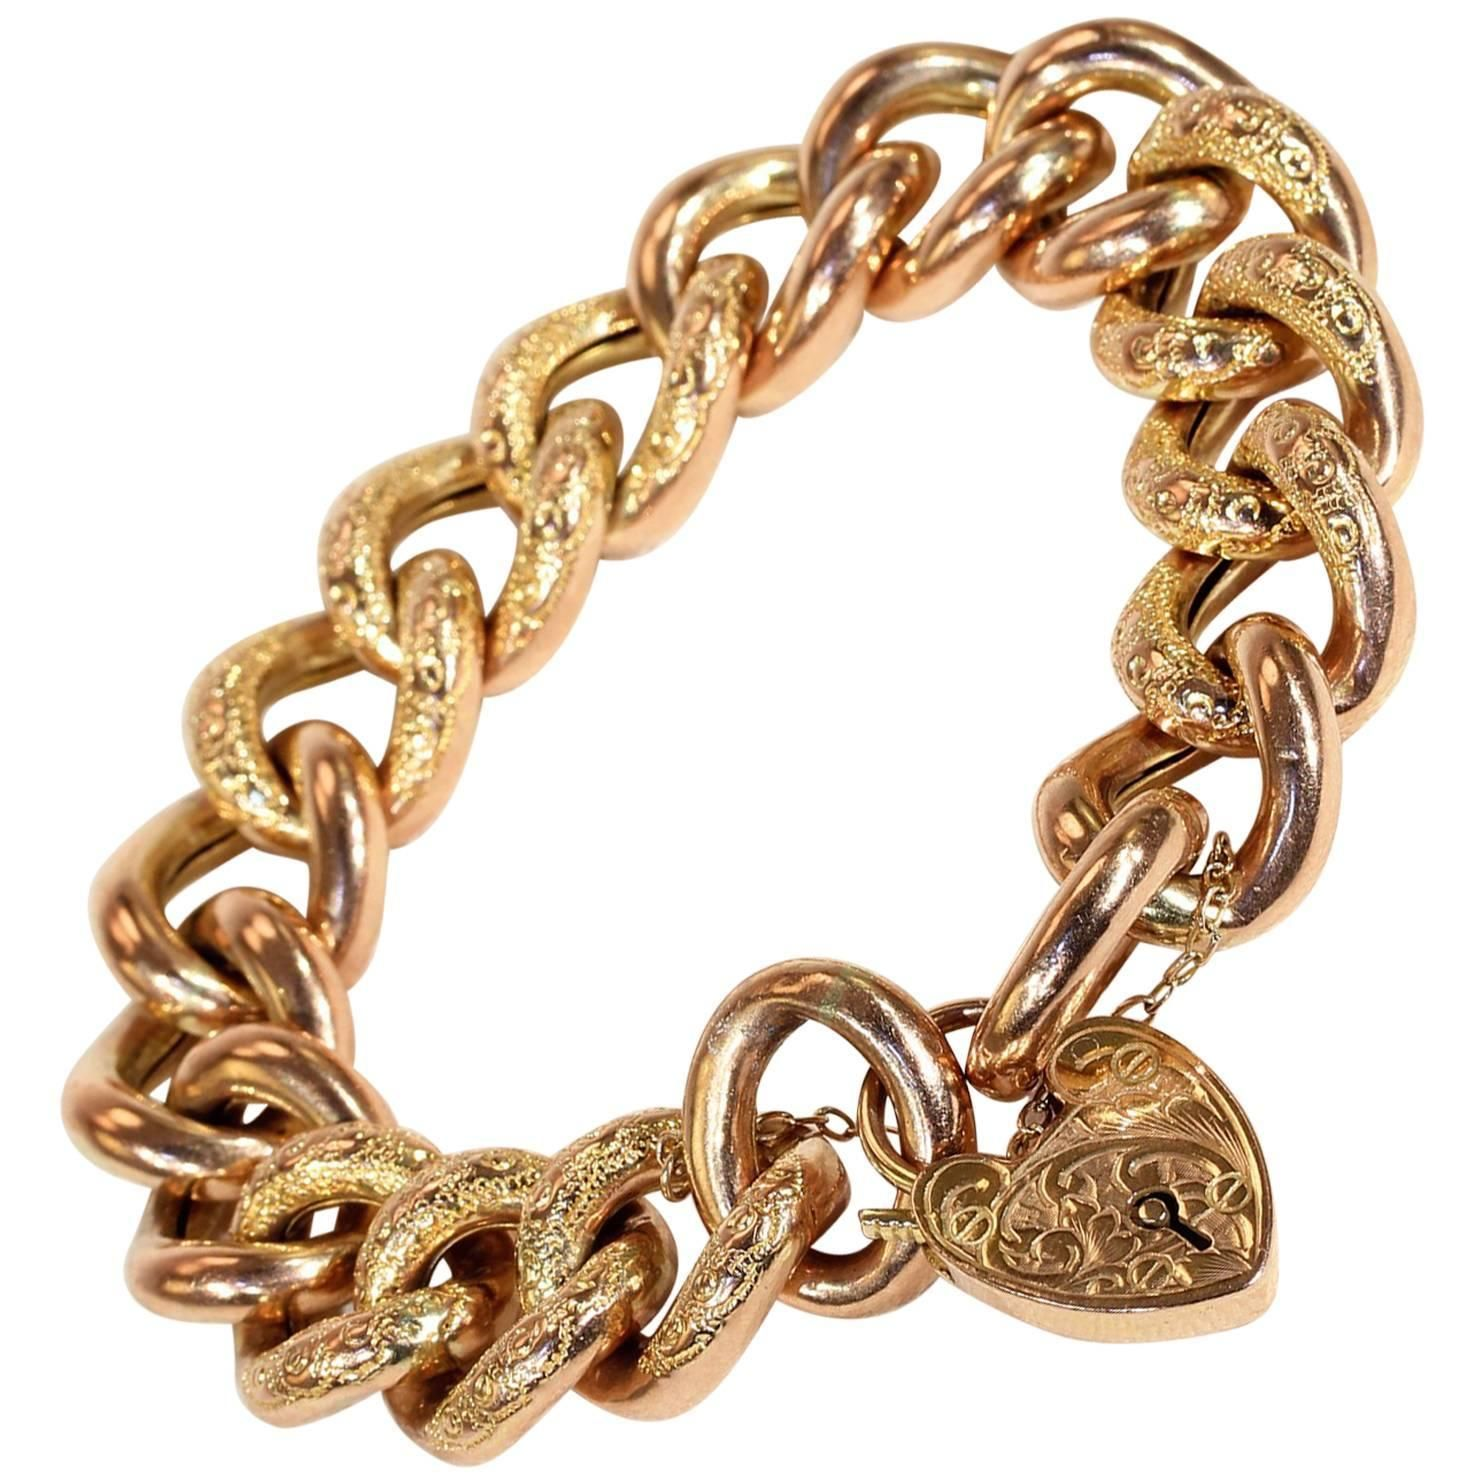 Antique Victorian Gold Curb Link Heart Lock Bracelet